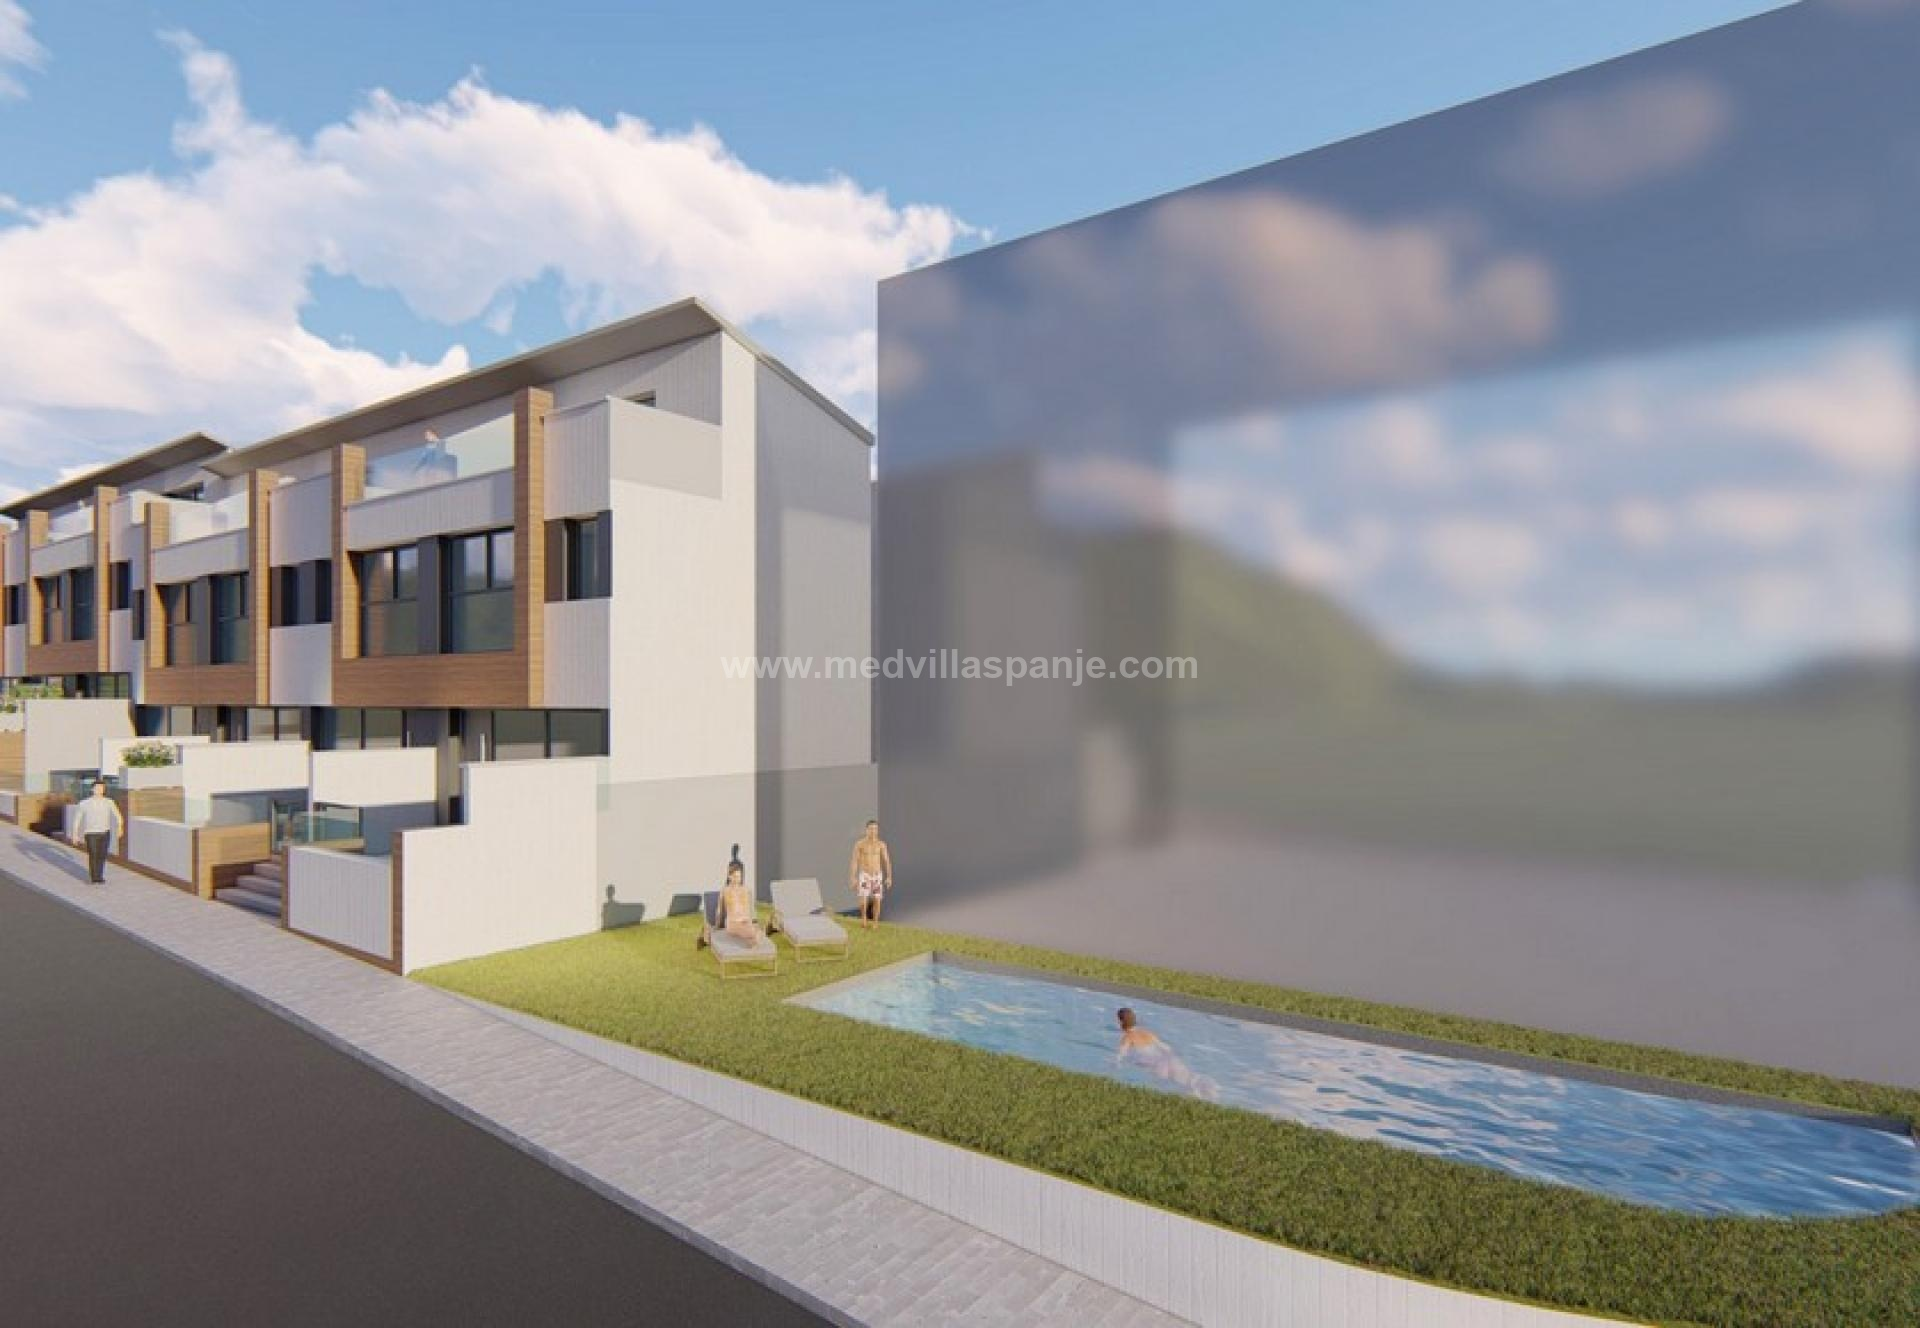 Modern houses with spacious terraces in Guardamar in Medvilla Spanje